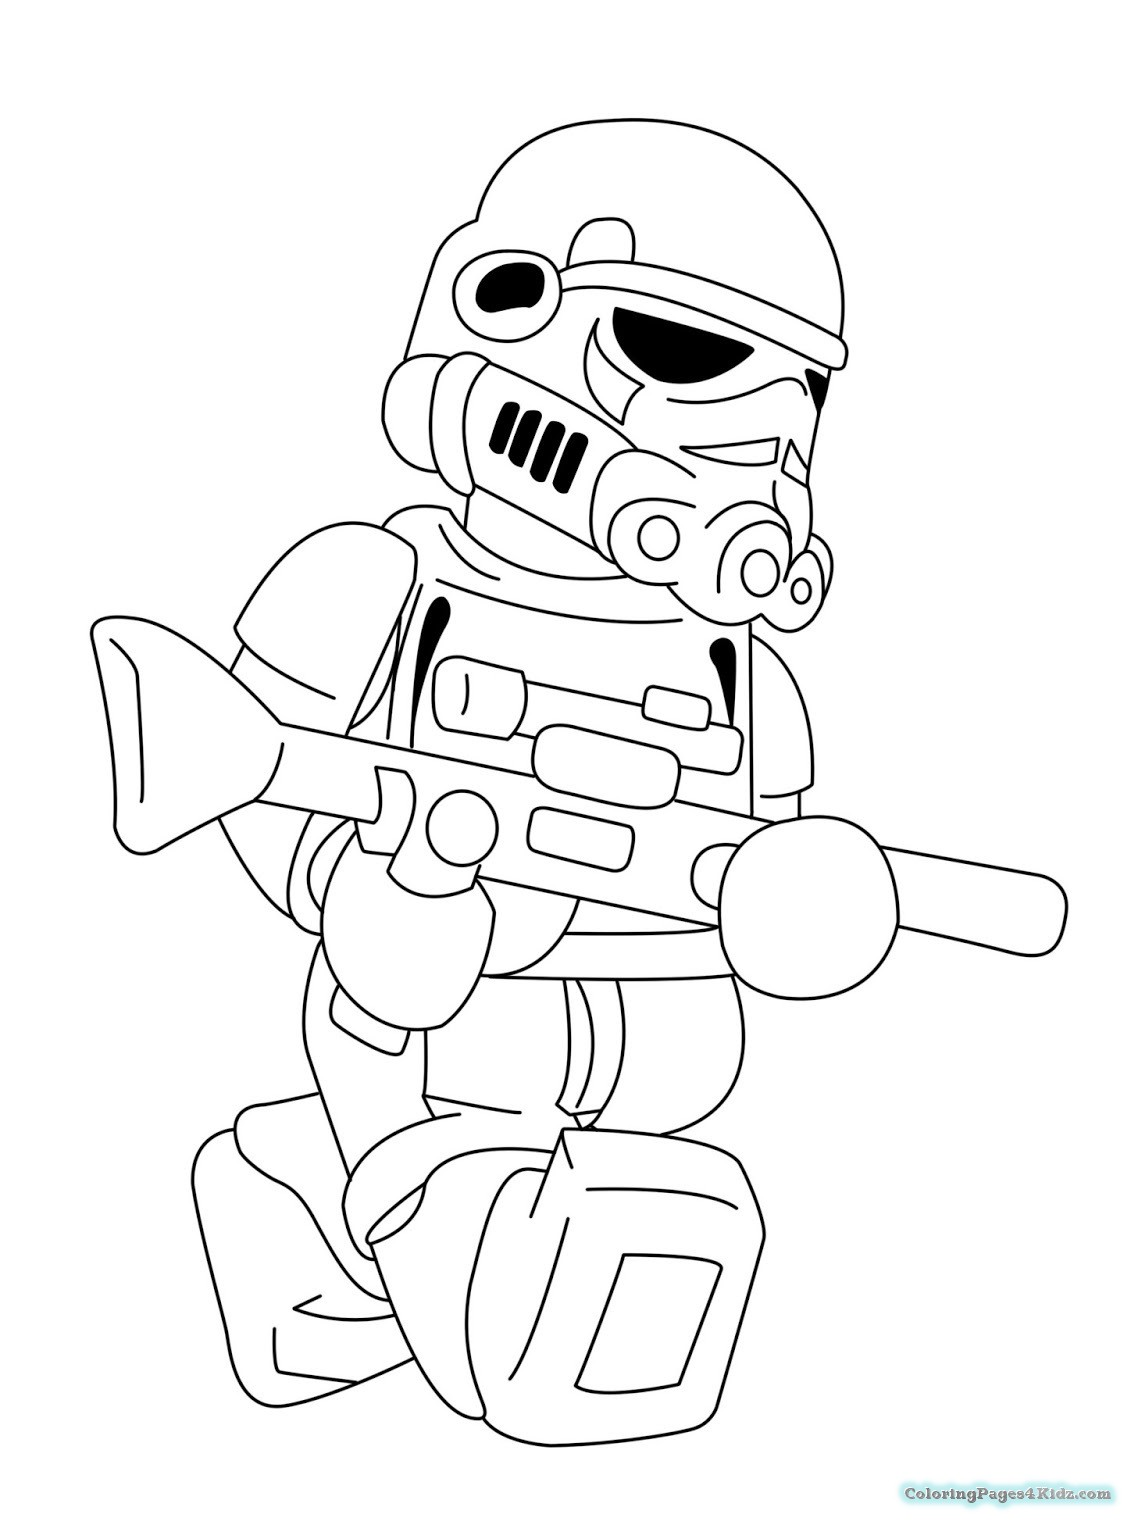 lego star wars colouring create your own lego coloring pages for kids lego wars star colouring